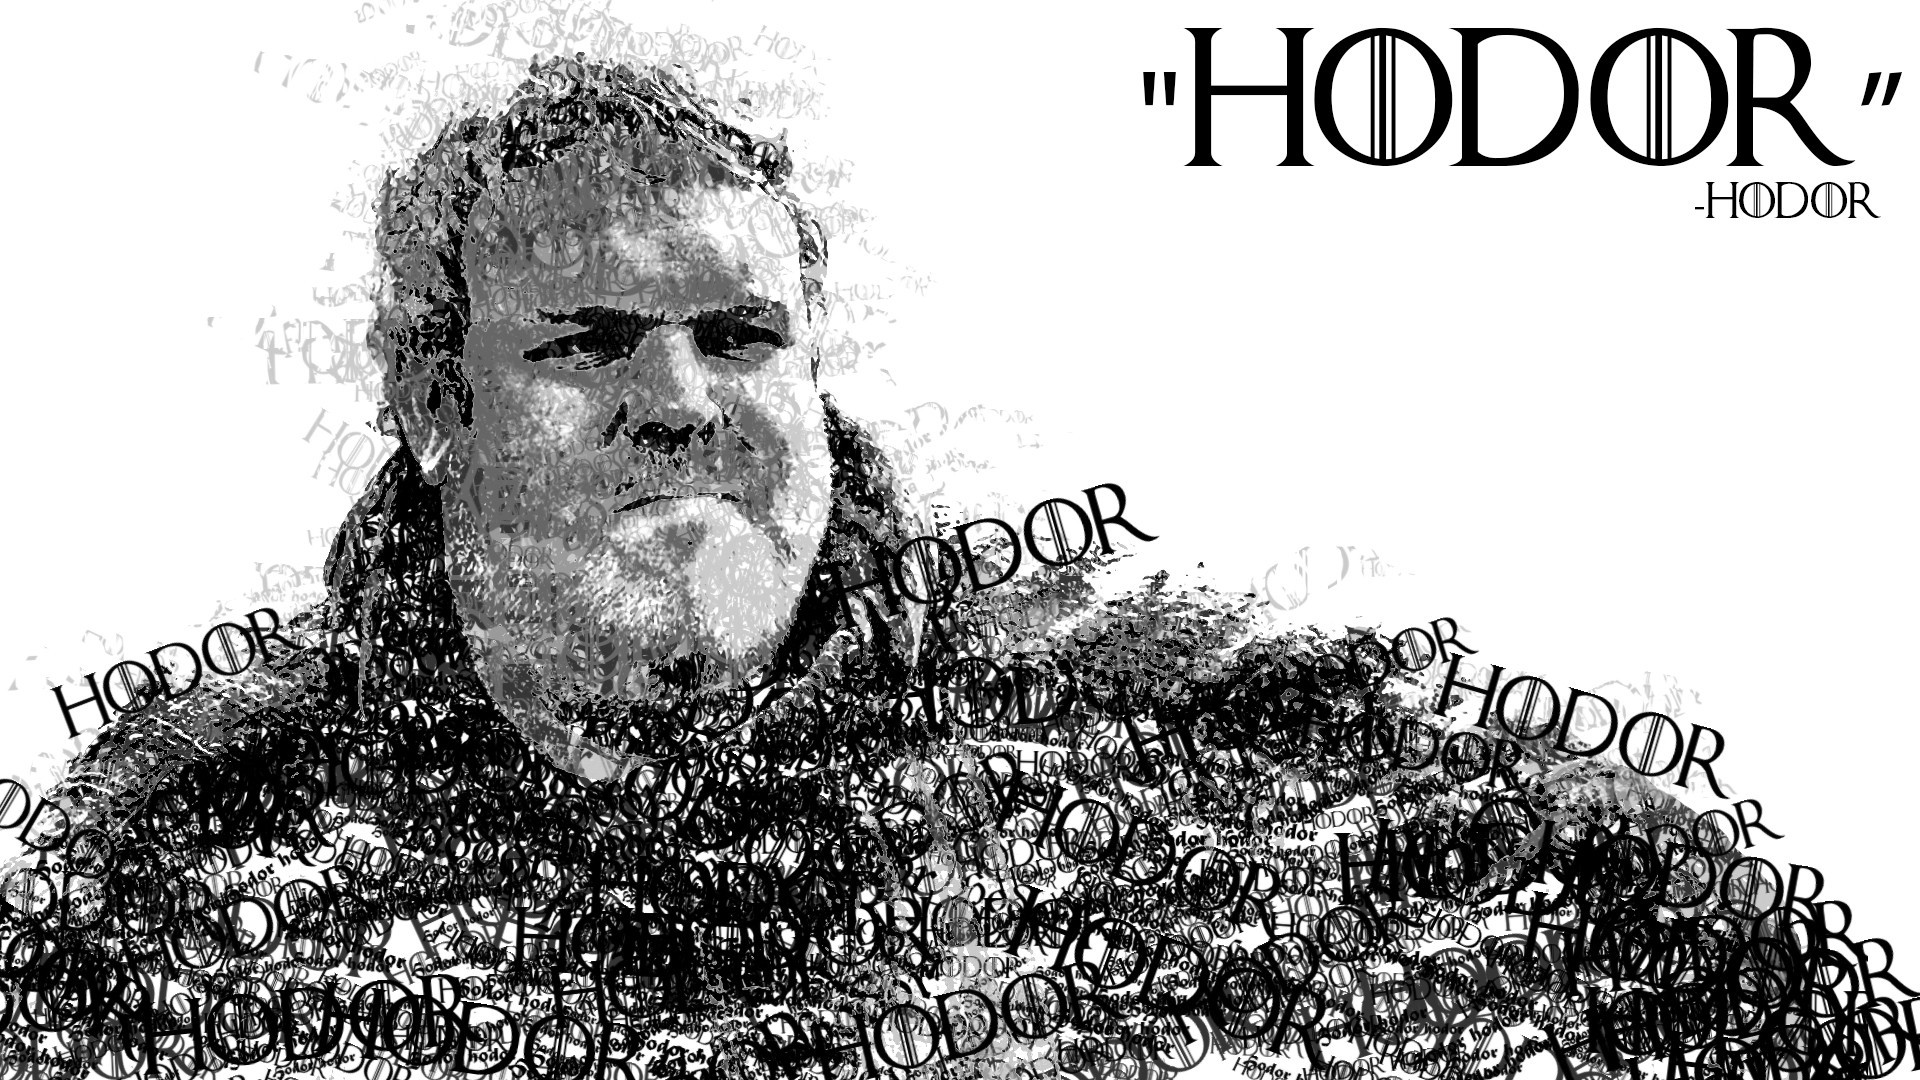 published in Game of Thrones